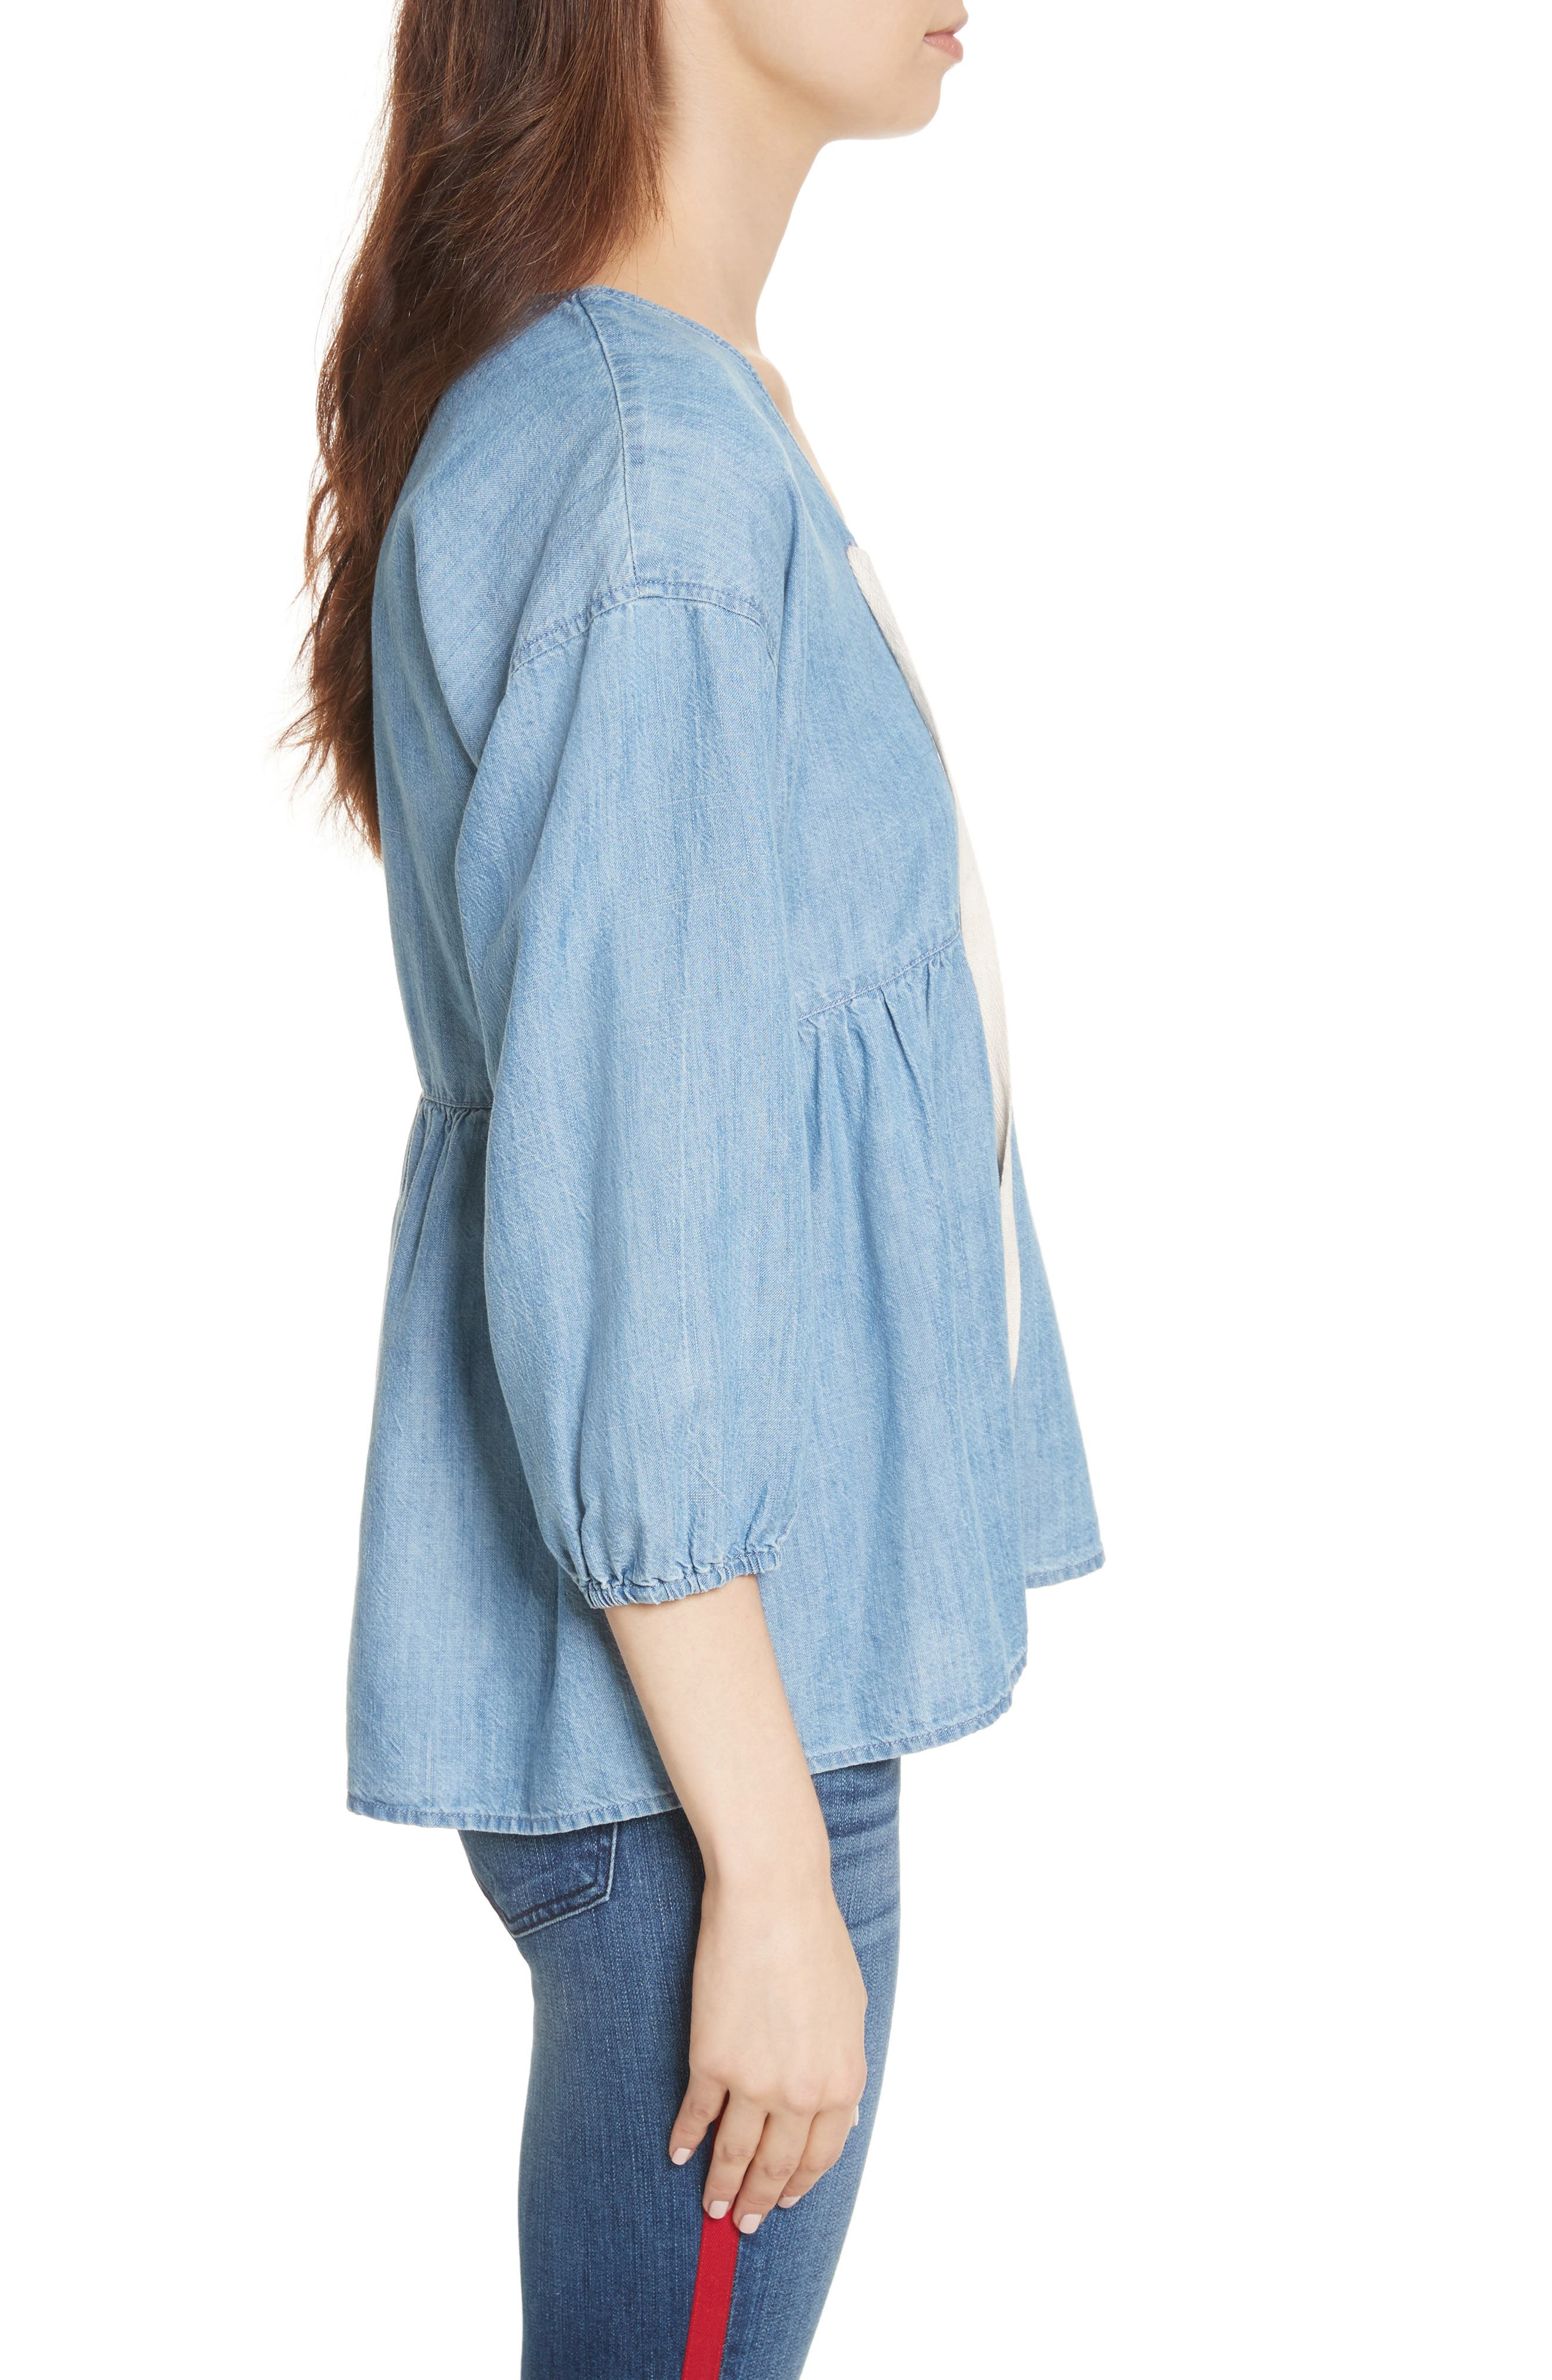 Bealette Lace-Up Chambray Top,                             Alternate thumbnail 3, color,                             481